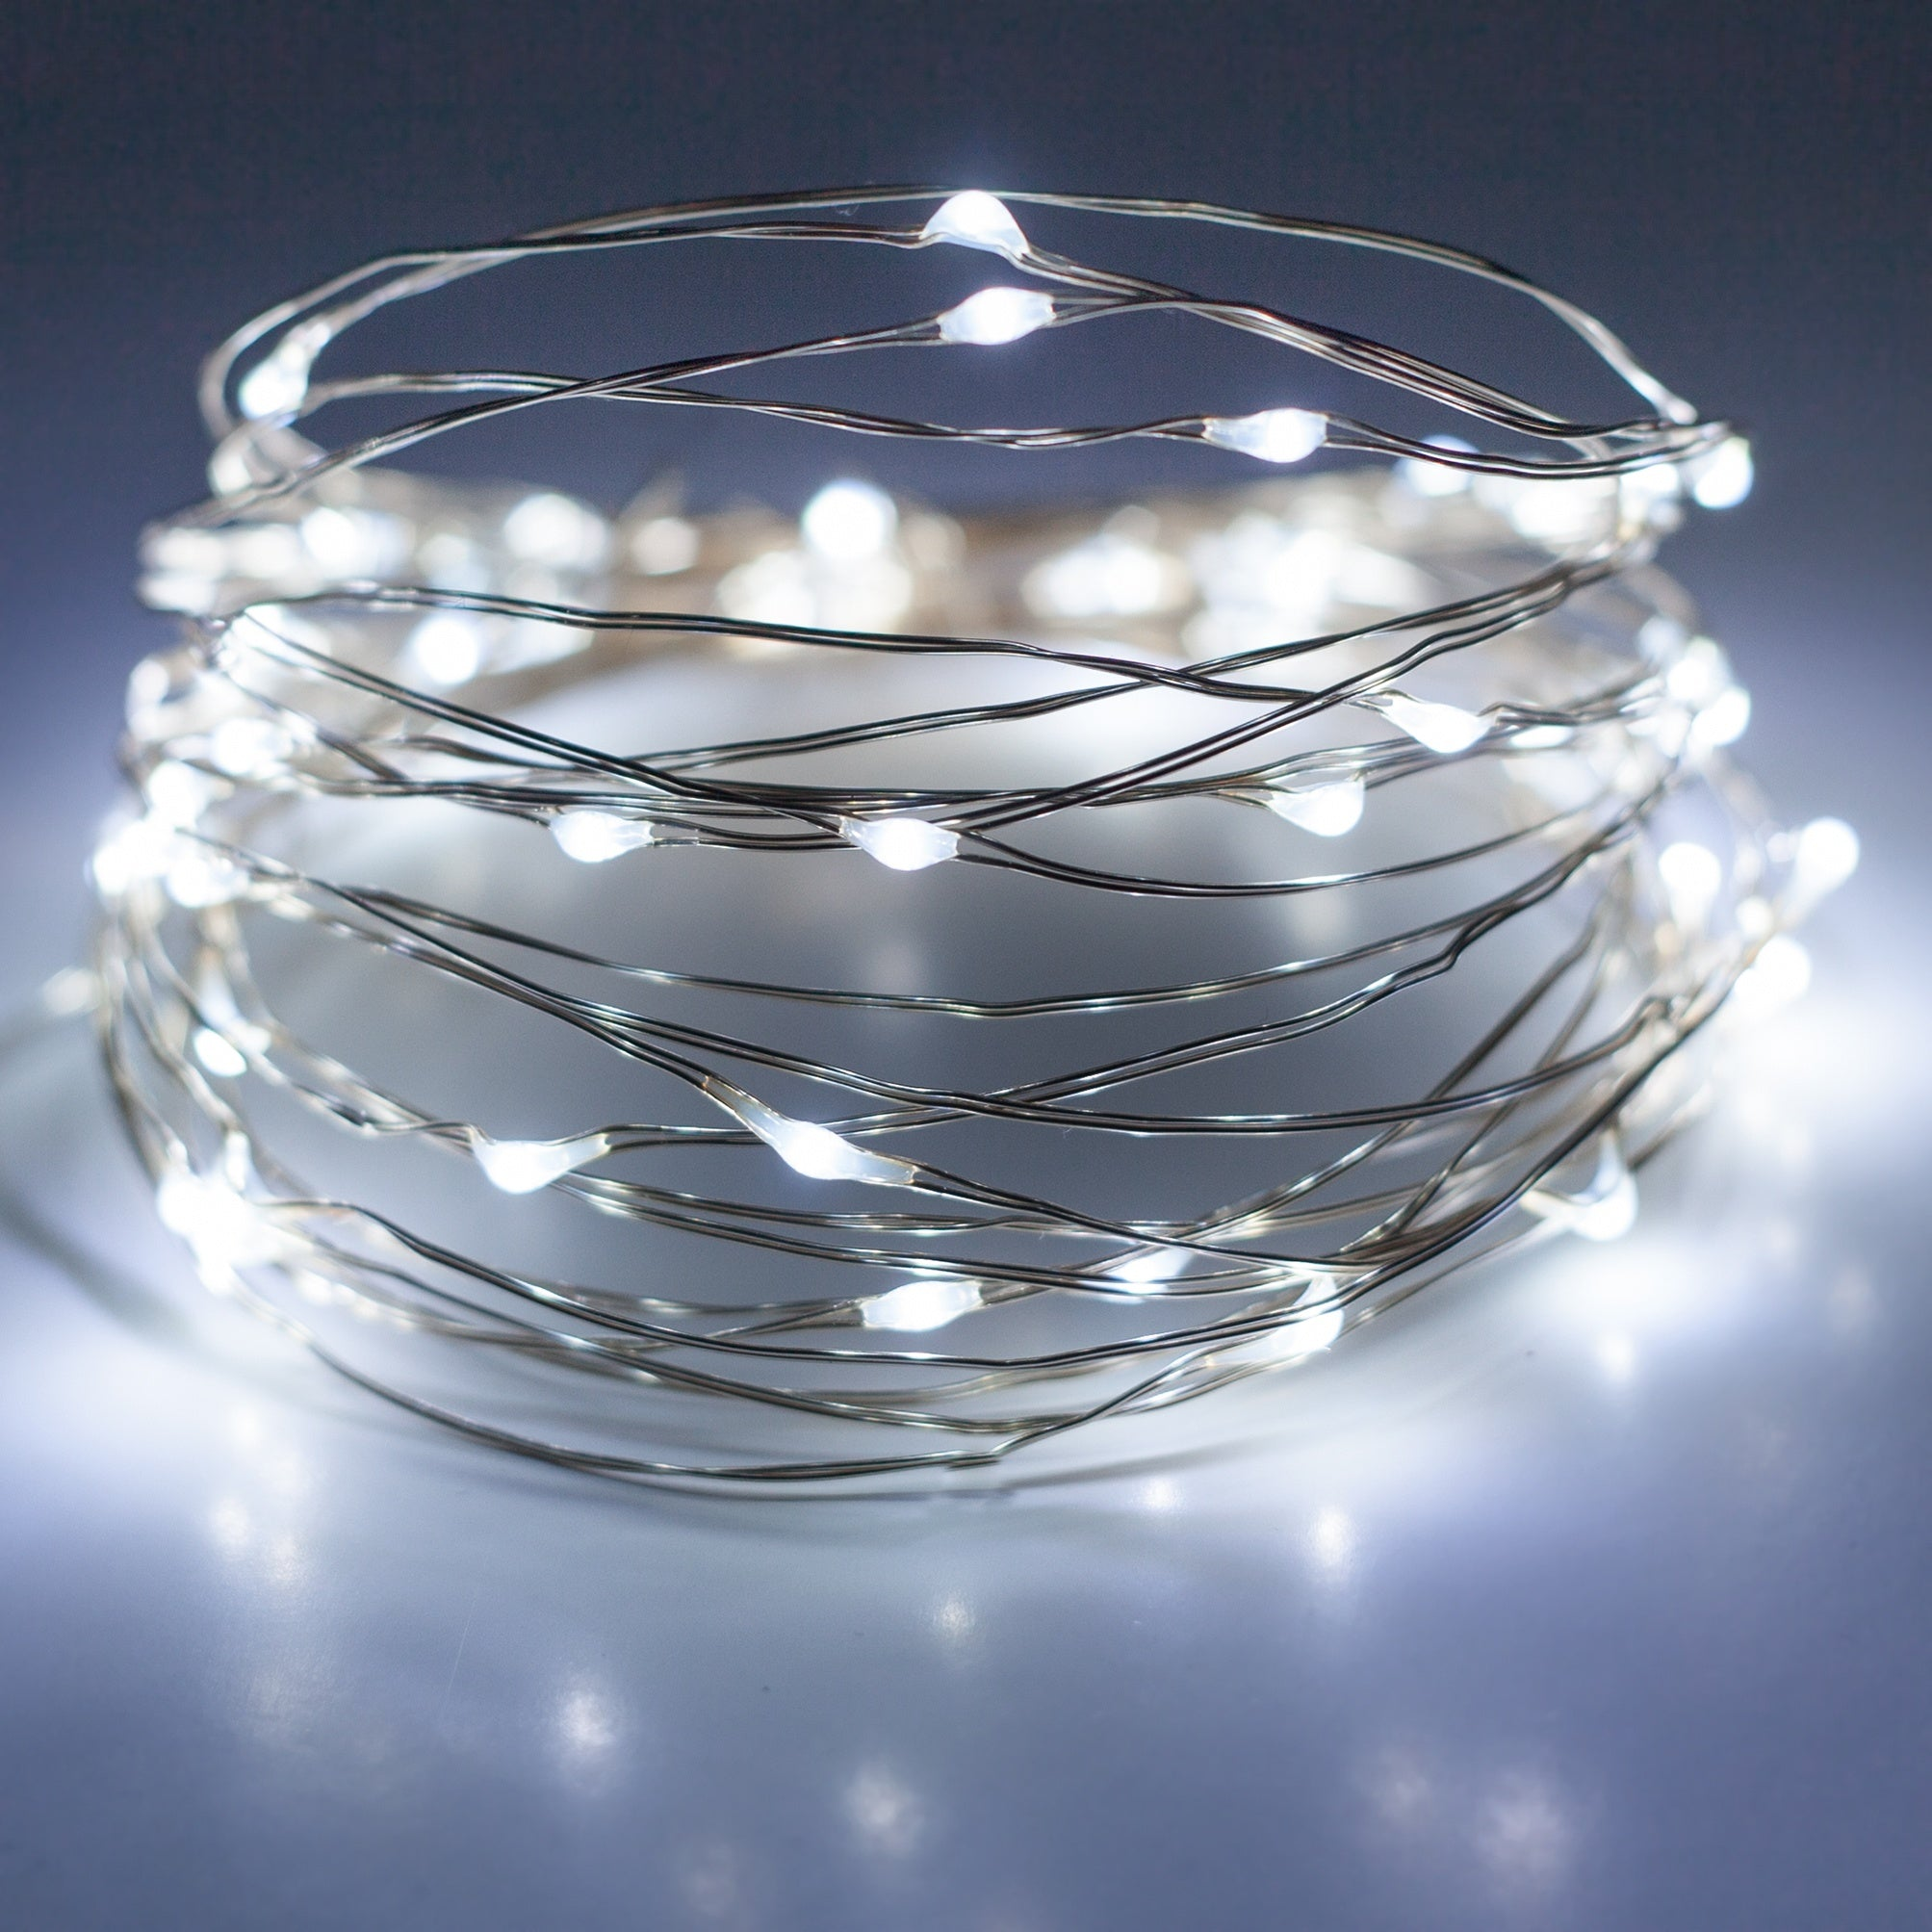 LED seed fairy lights 2m (pure white) - battery